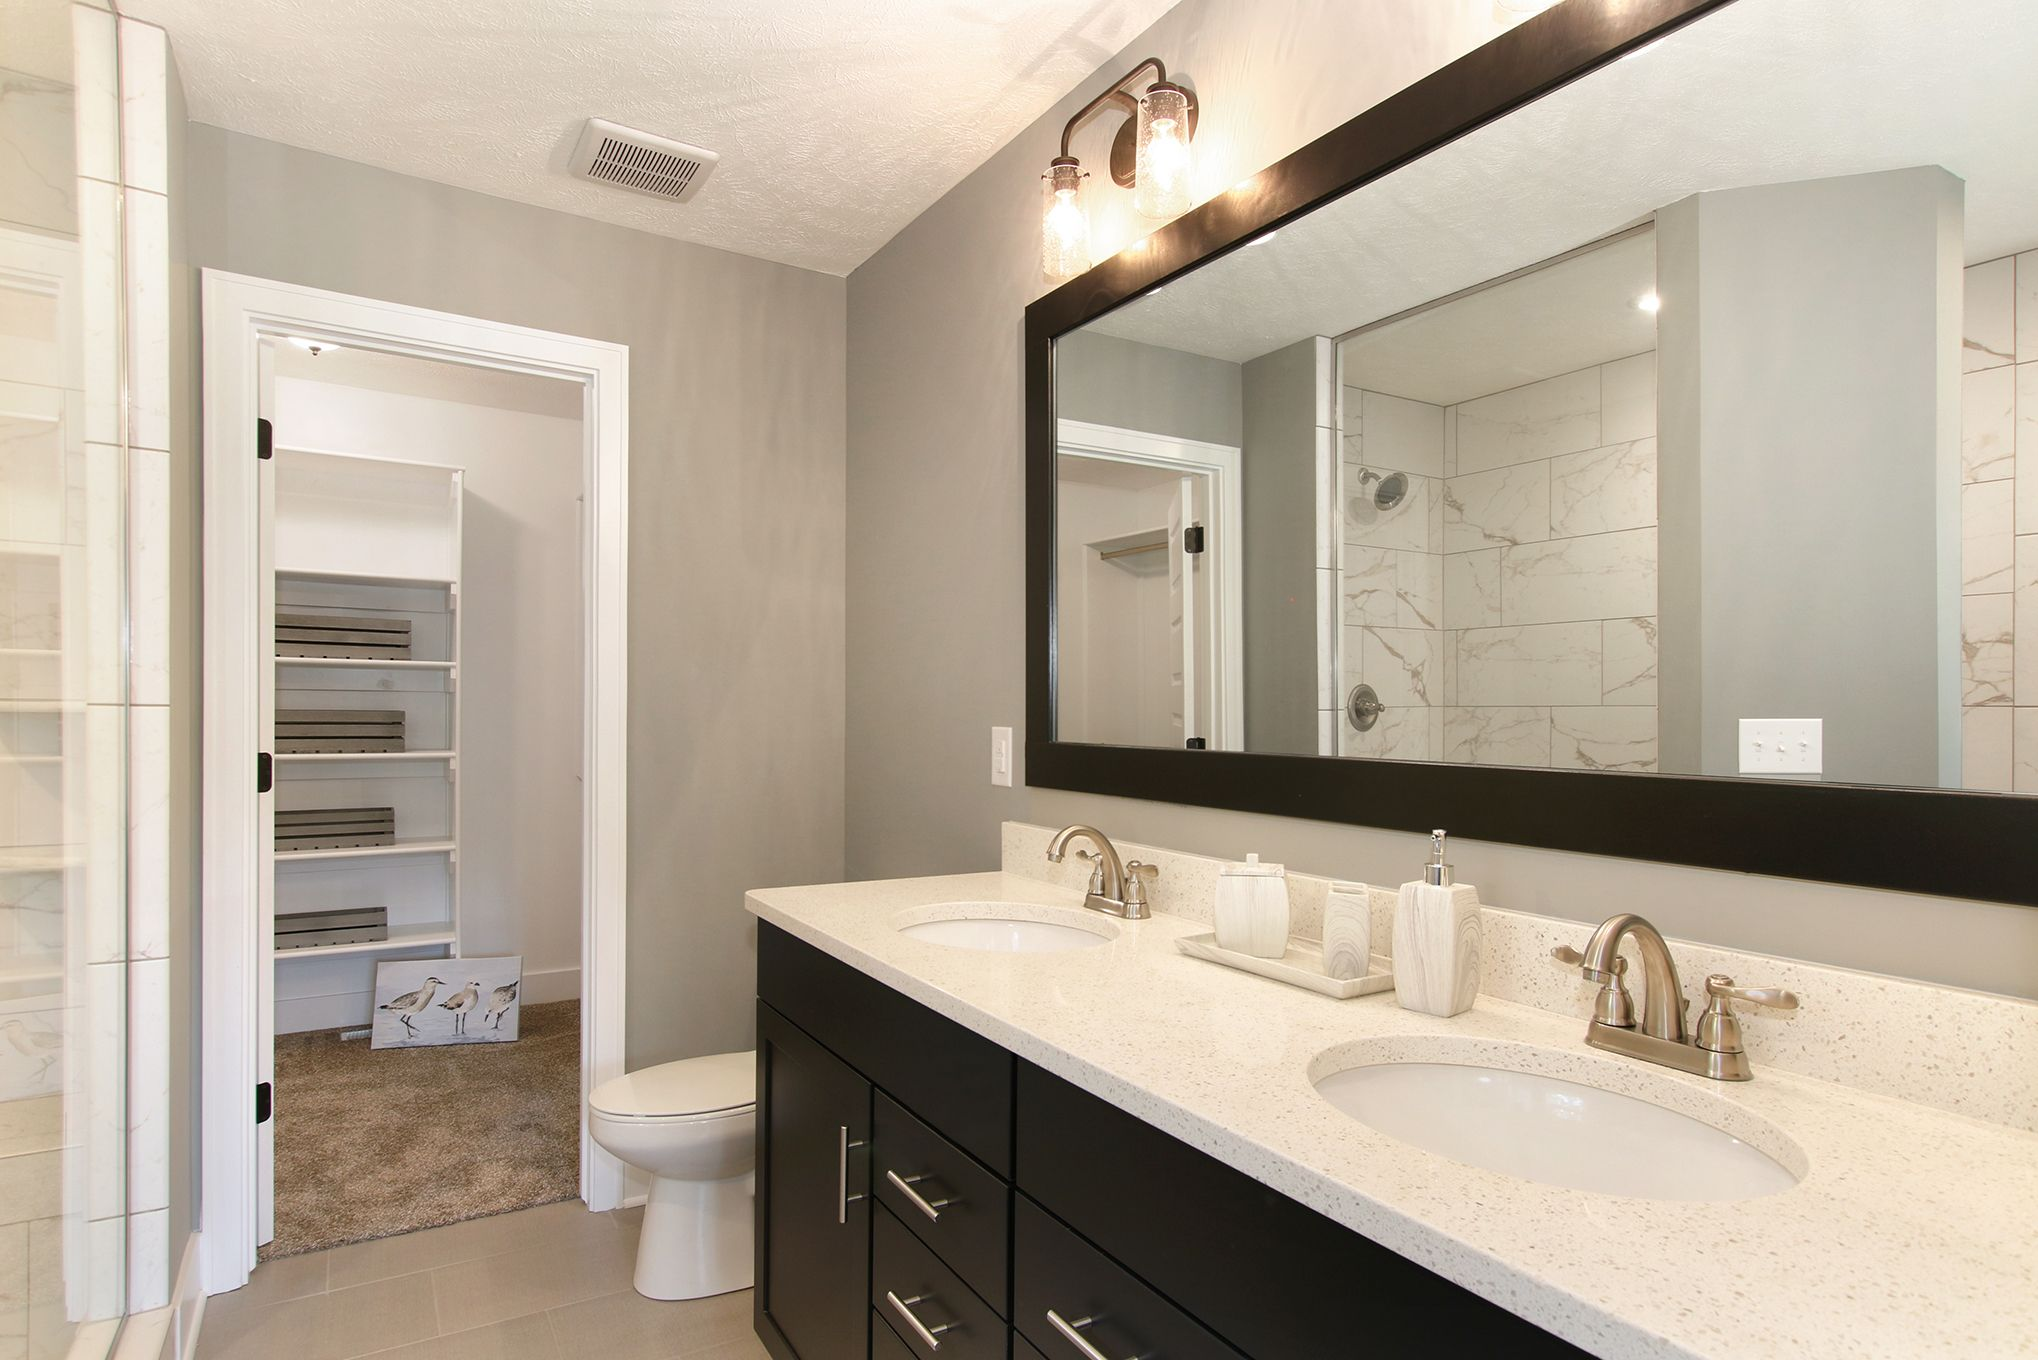 Bathroom featured in The Hadley By Eastbrook Homes Inc. in Grand Rapids, MI